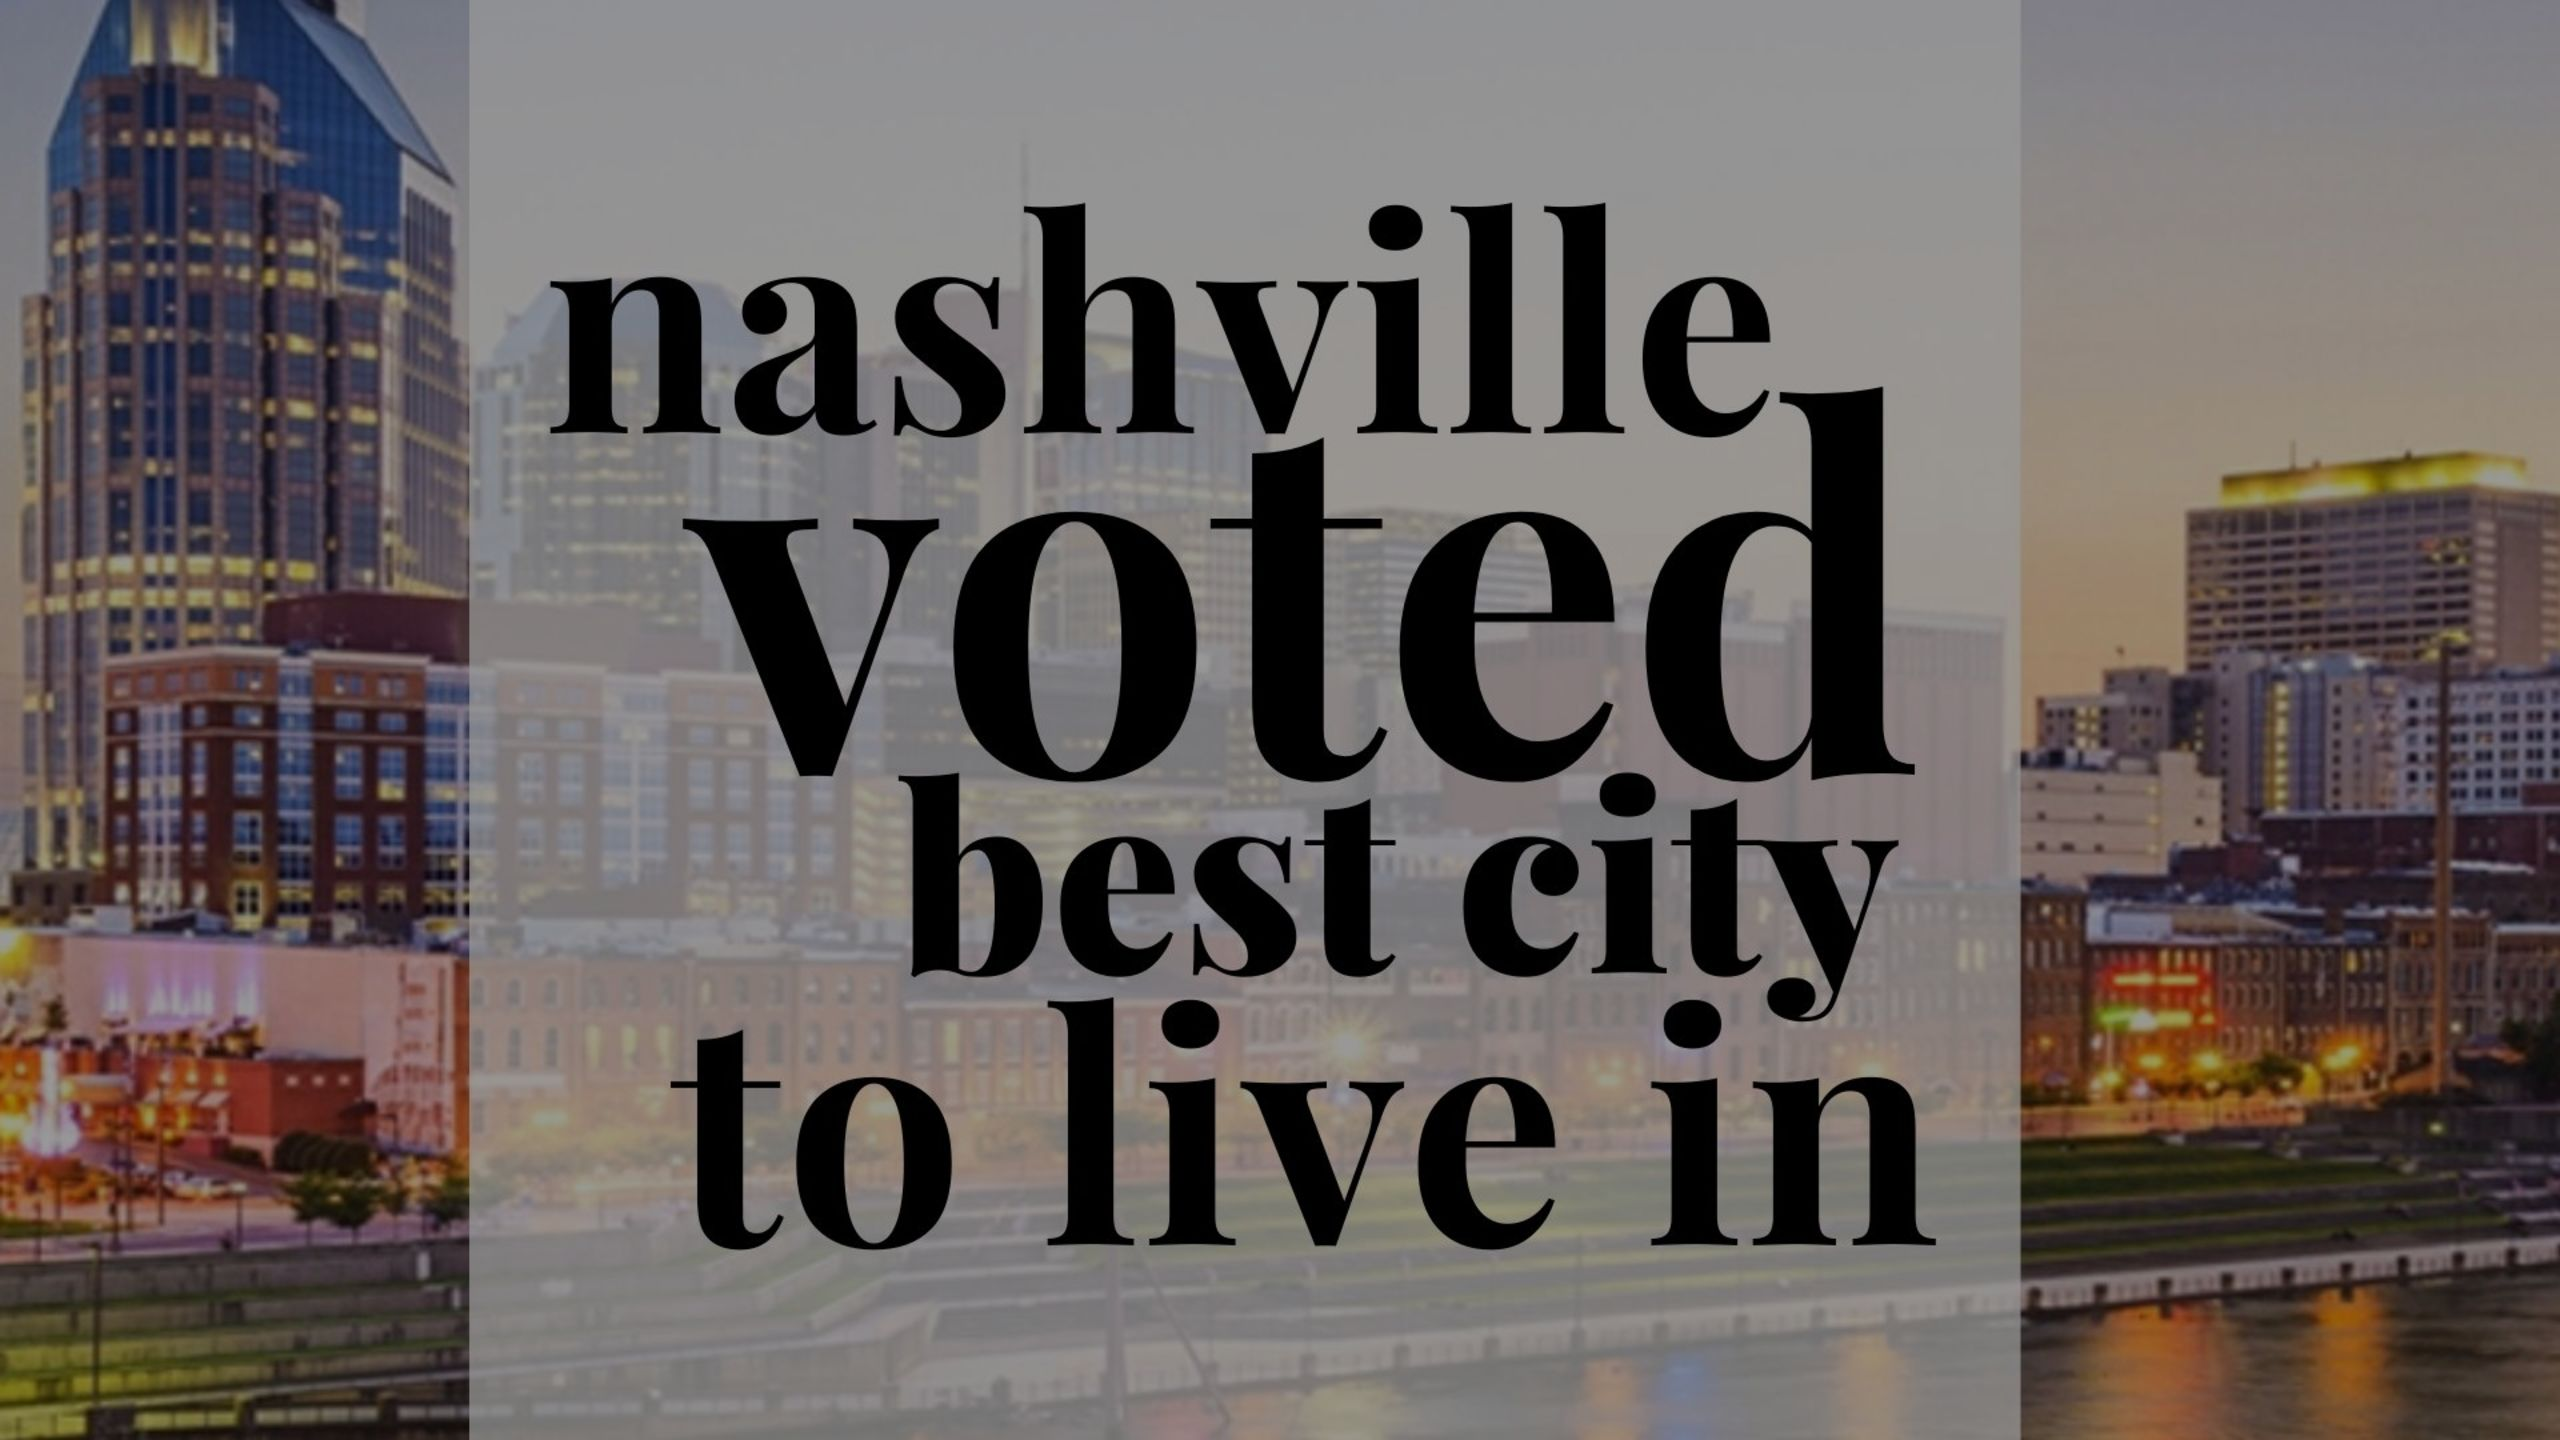 Nashville Voted: The South's Best City